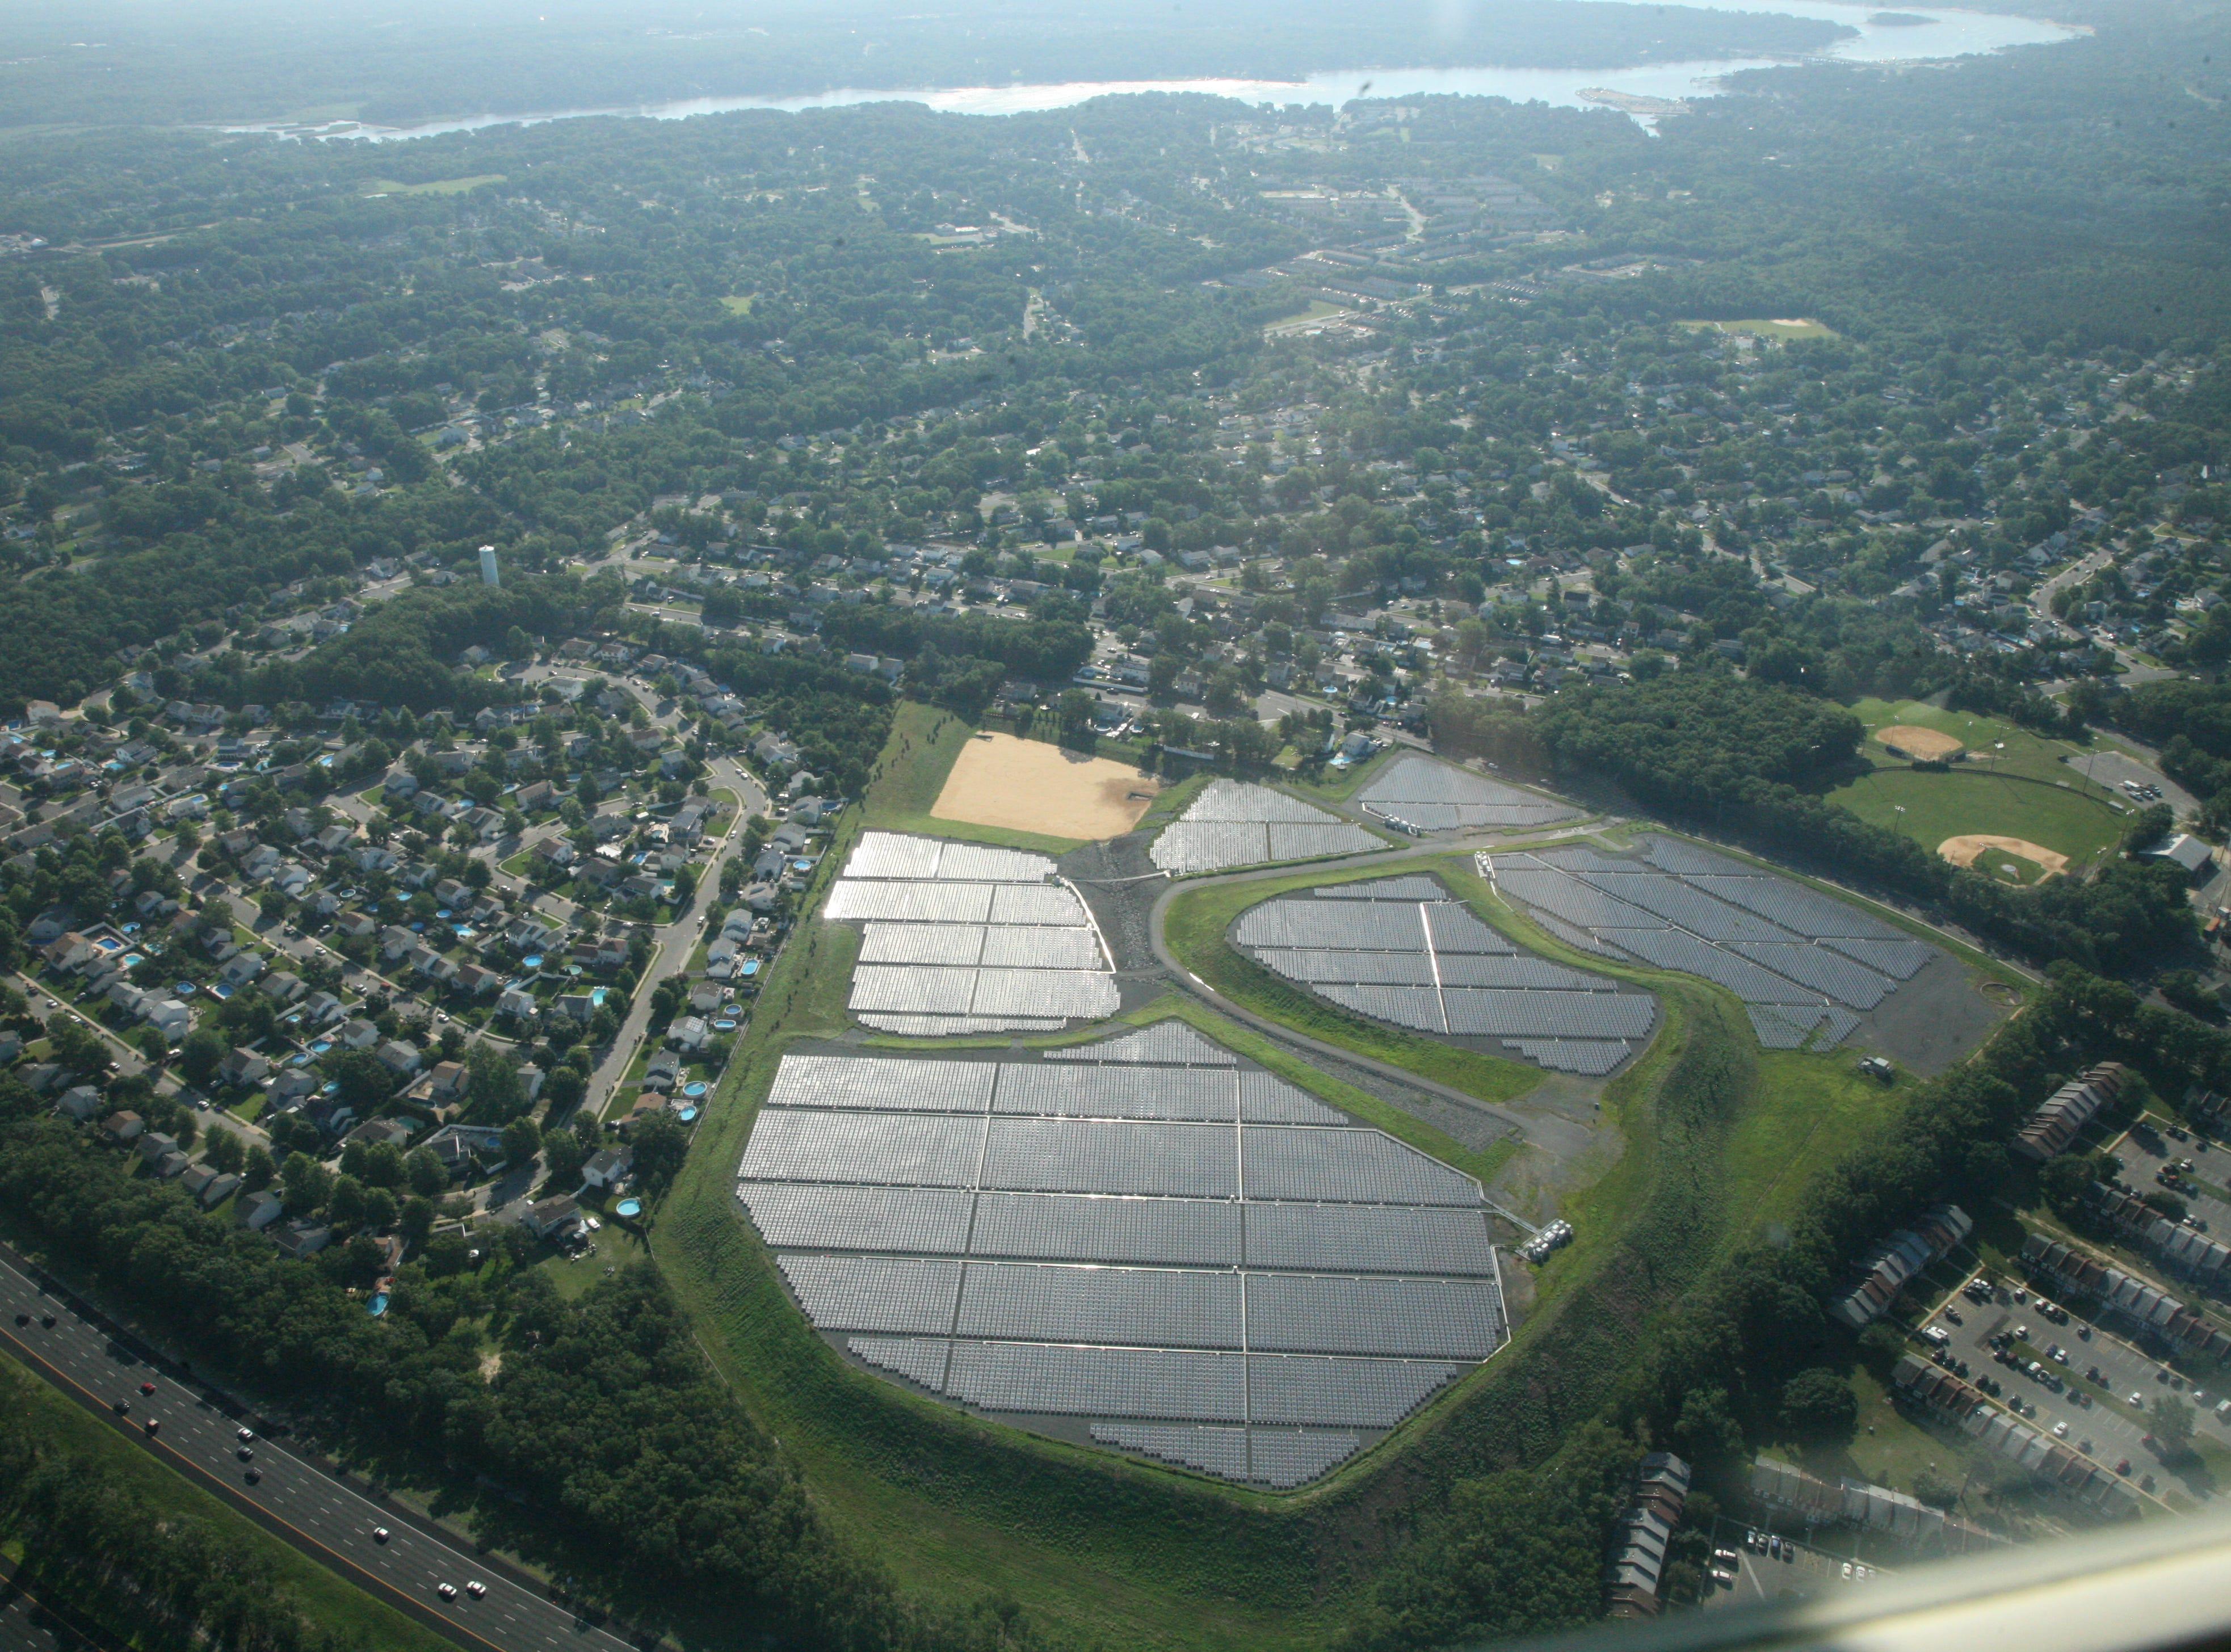 A solar farm near the Garden State Parkway in Brick Township with the Manasquan River to the north.